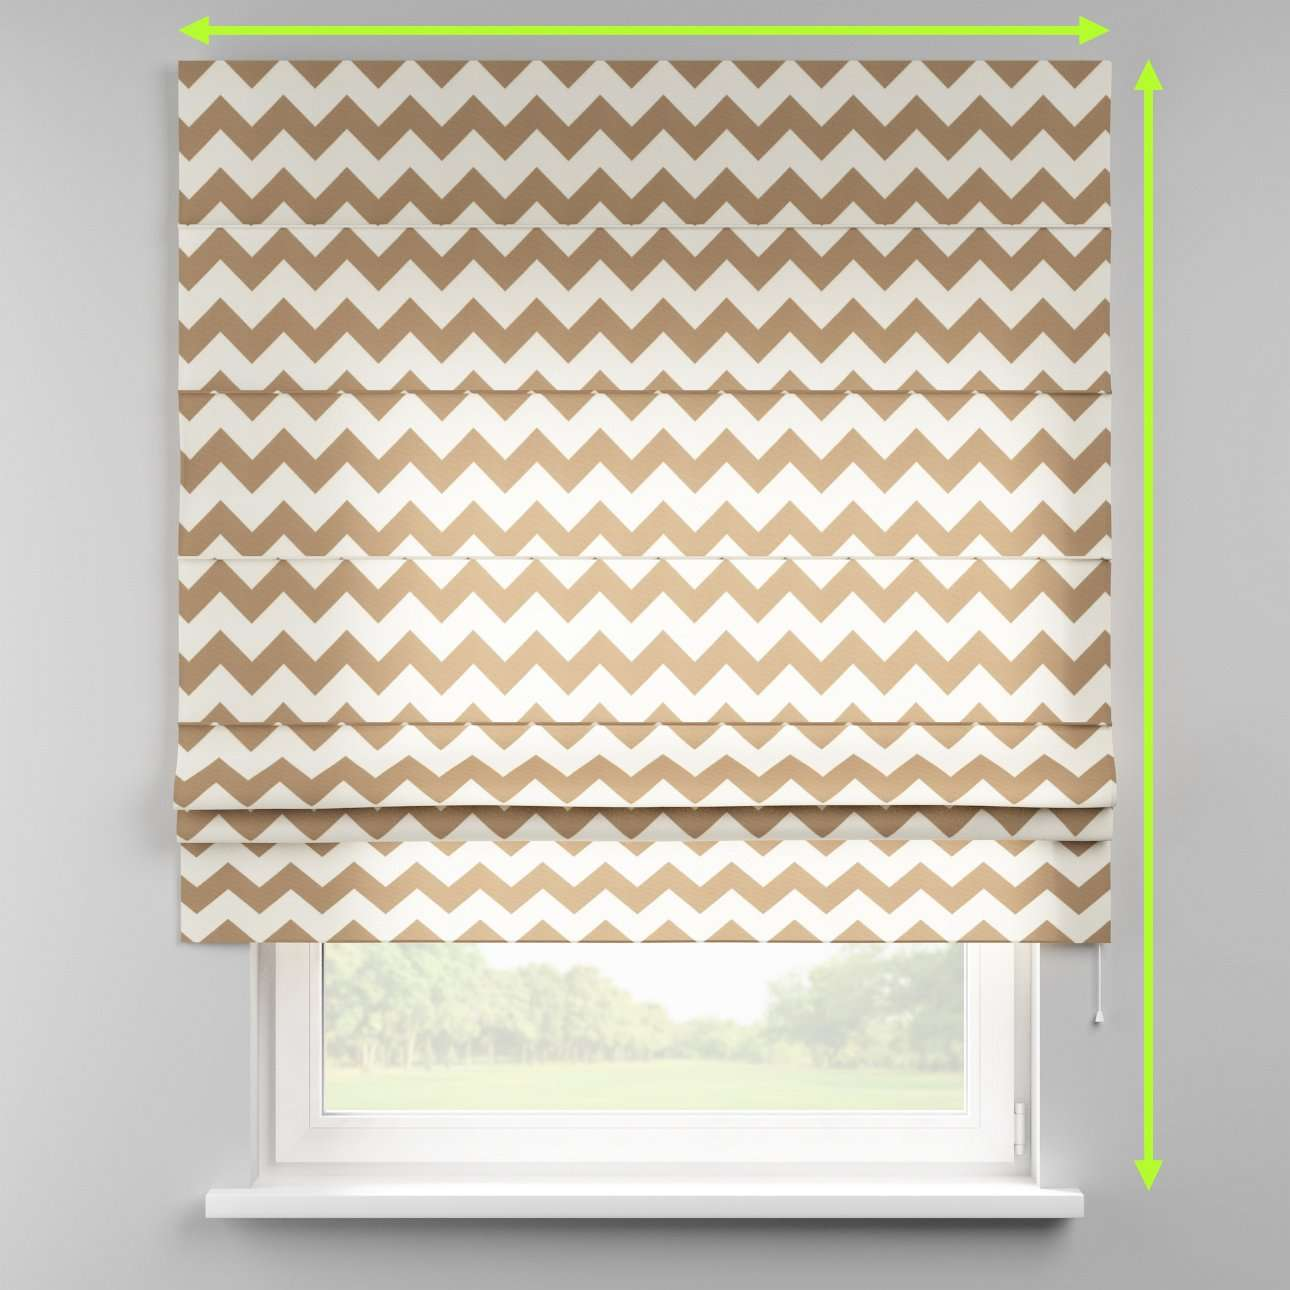 Padva roman blind  in collection Comic Book & Geo Prints, fabric: 135-01